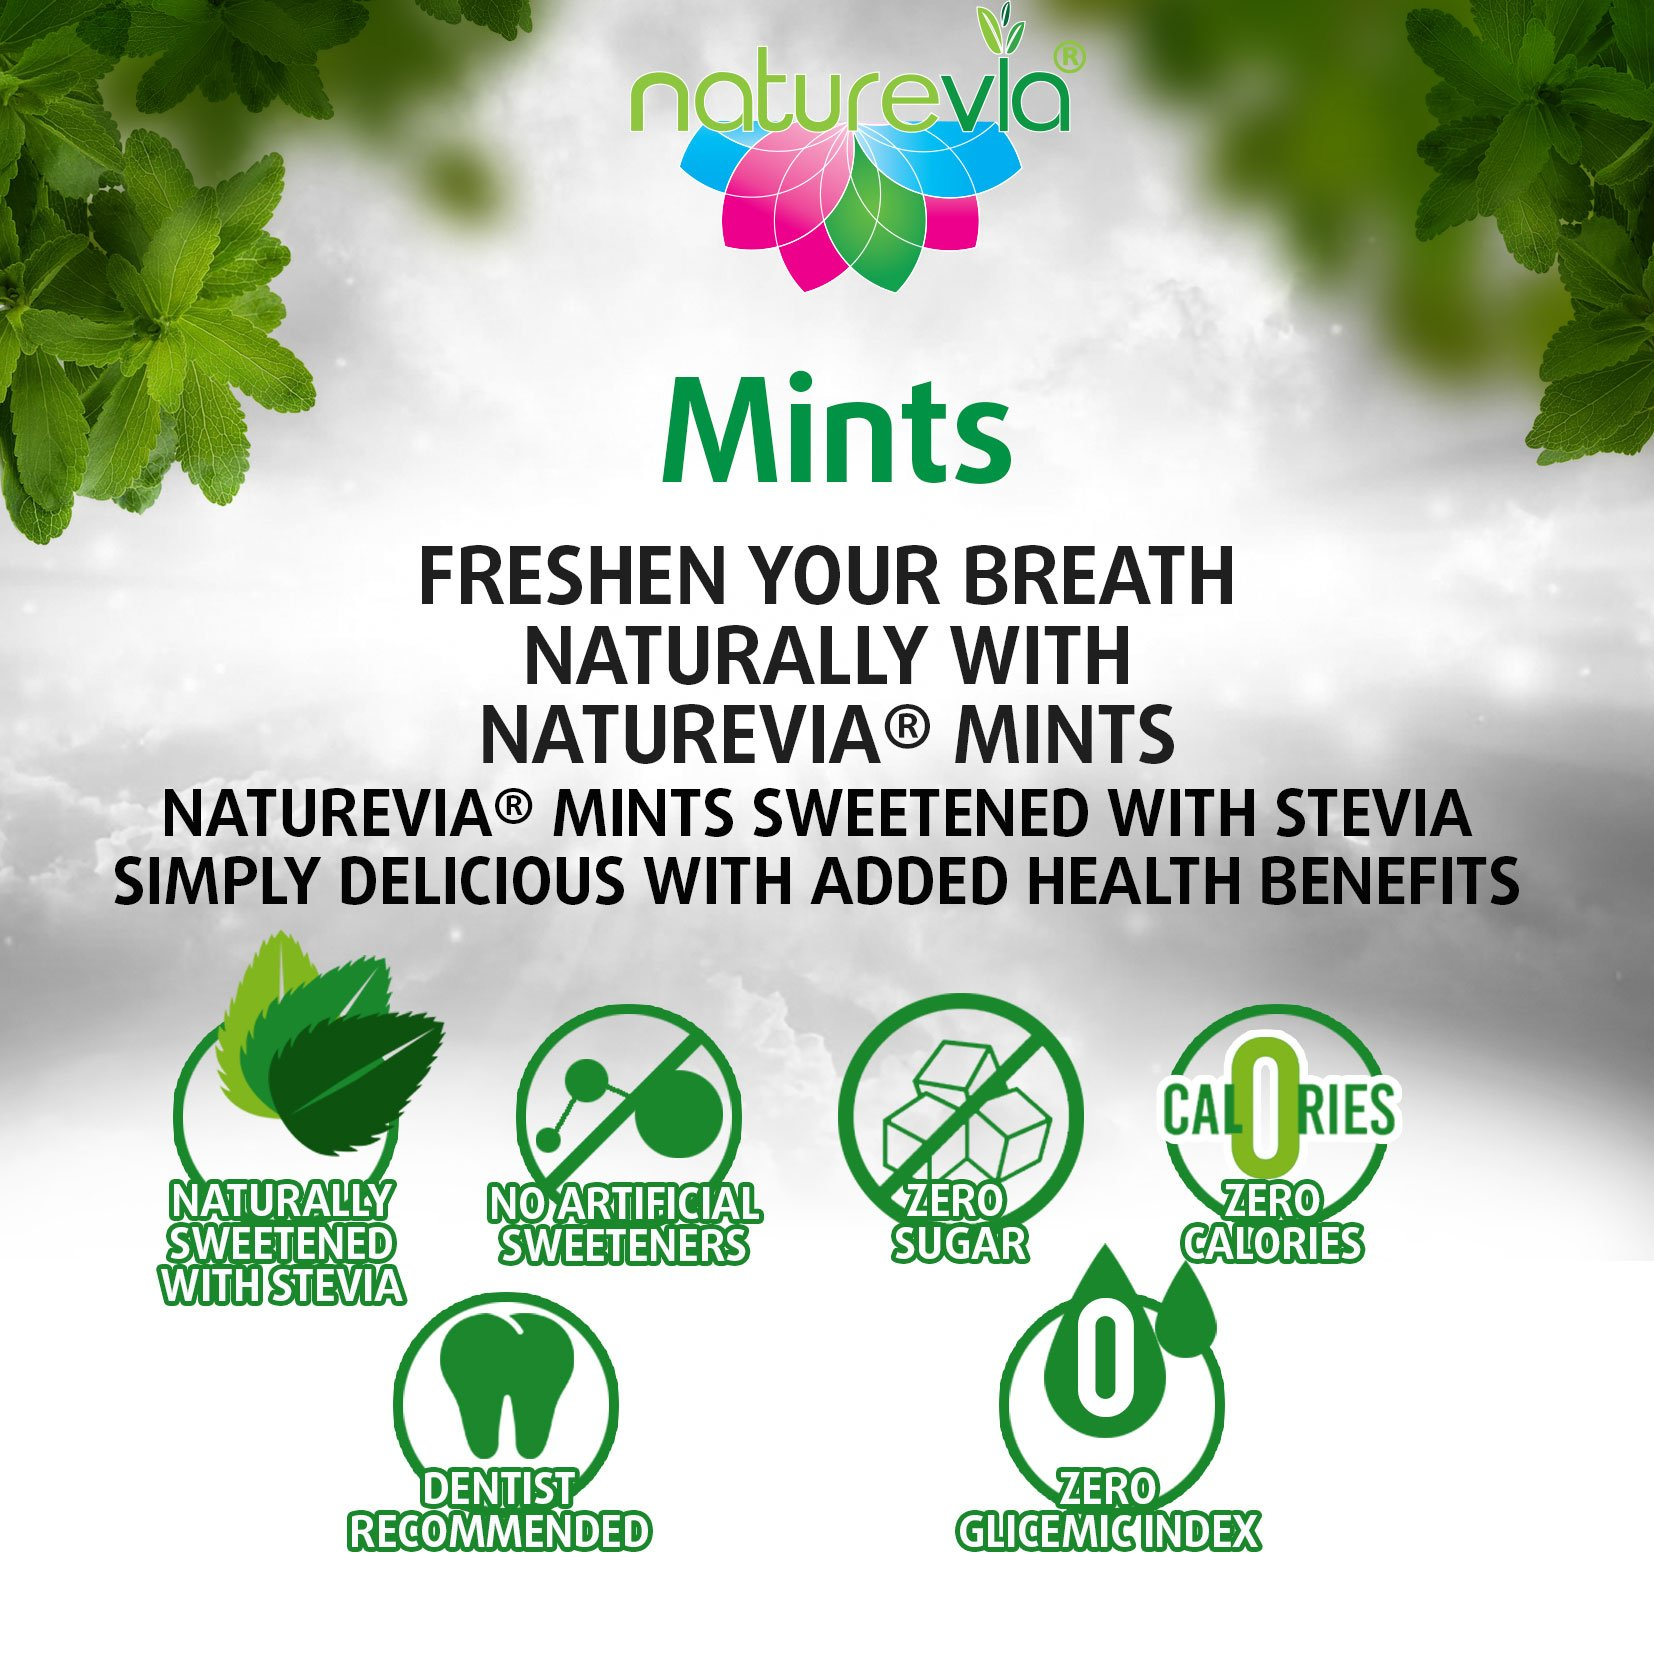 Sugar-Free Mints - Cinnamon Flavor (12 PACK-100 tabs 18 g): Mints Naturally Sweetened with Stevia, Free of: Sugar, Carbs, Calories, Glycemic Index, Aspartame ; Dentist Recommended by Naturevia (Image #3)